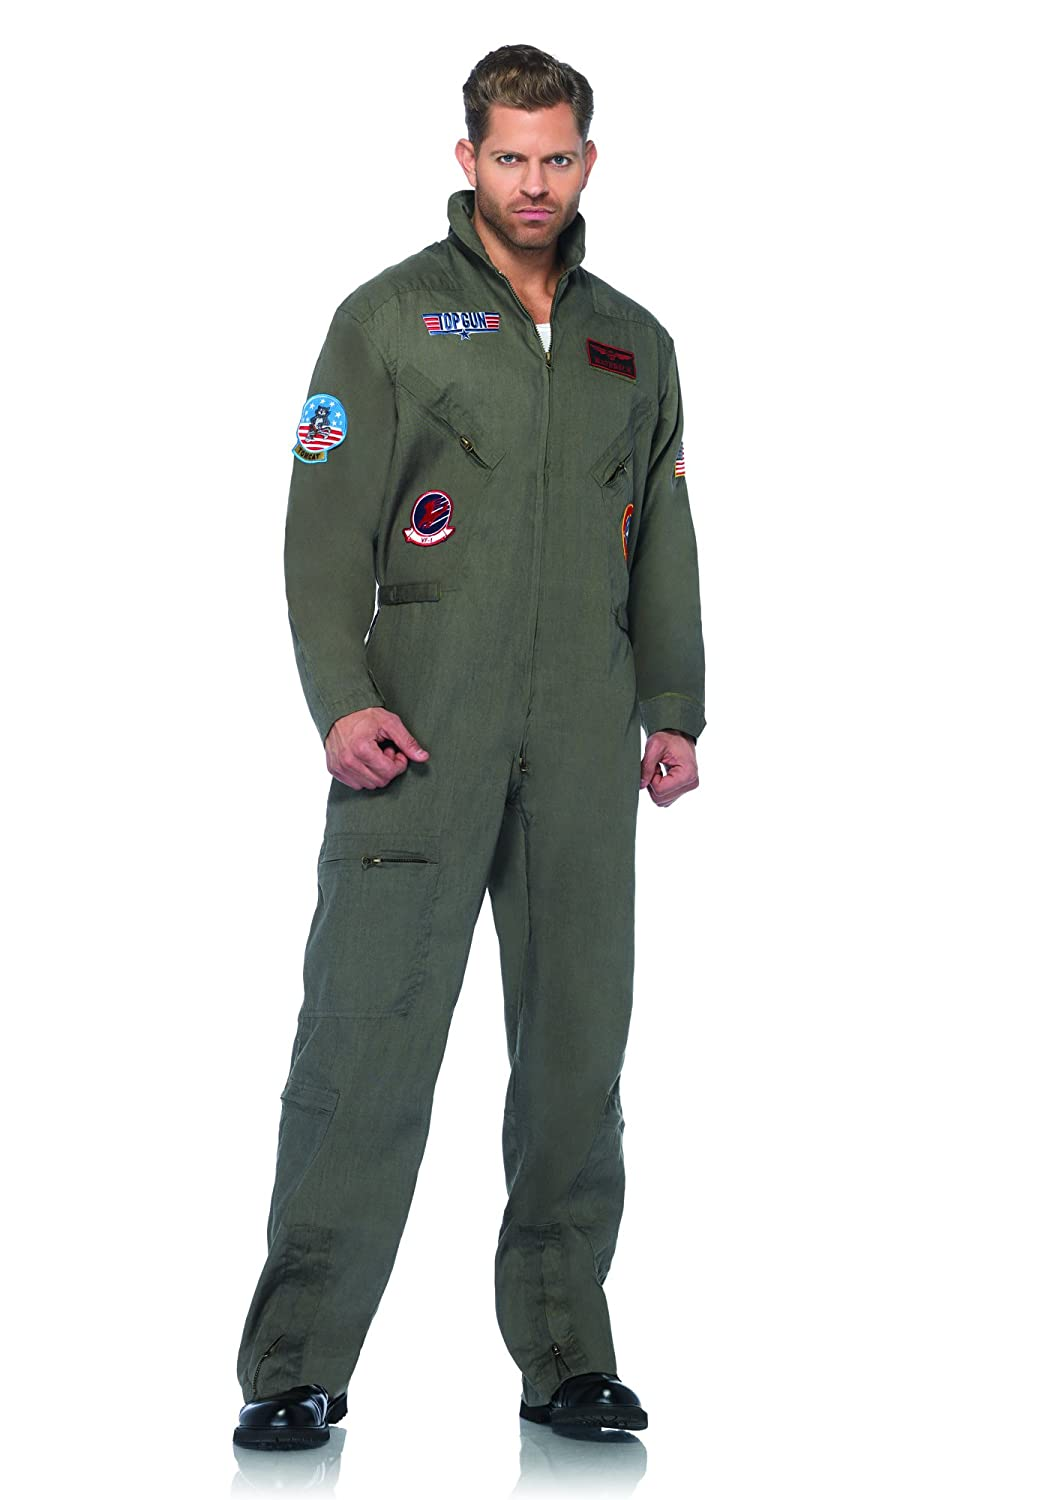 Amazon.com: Leg Avenue Top Gun Men\'s Flight Suit Adult Costume: Clothing